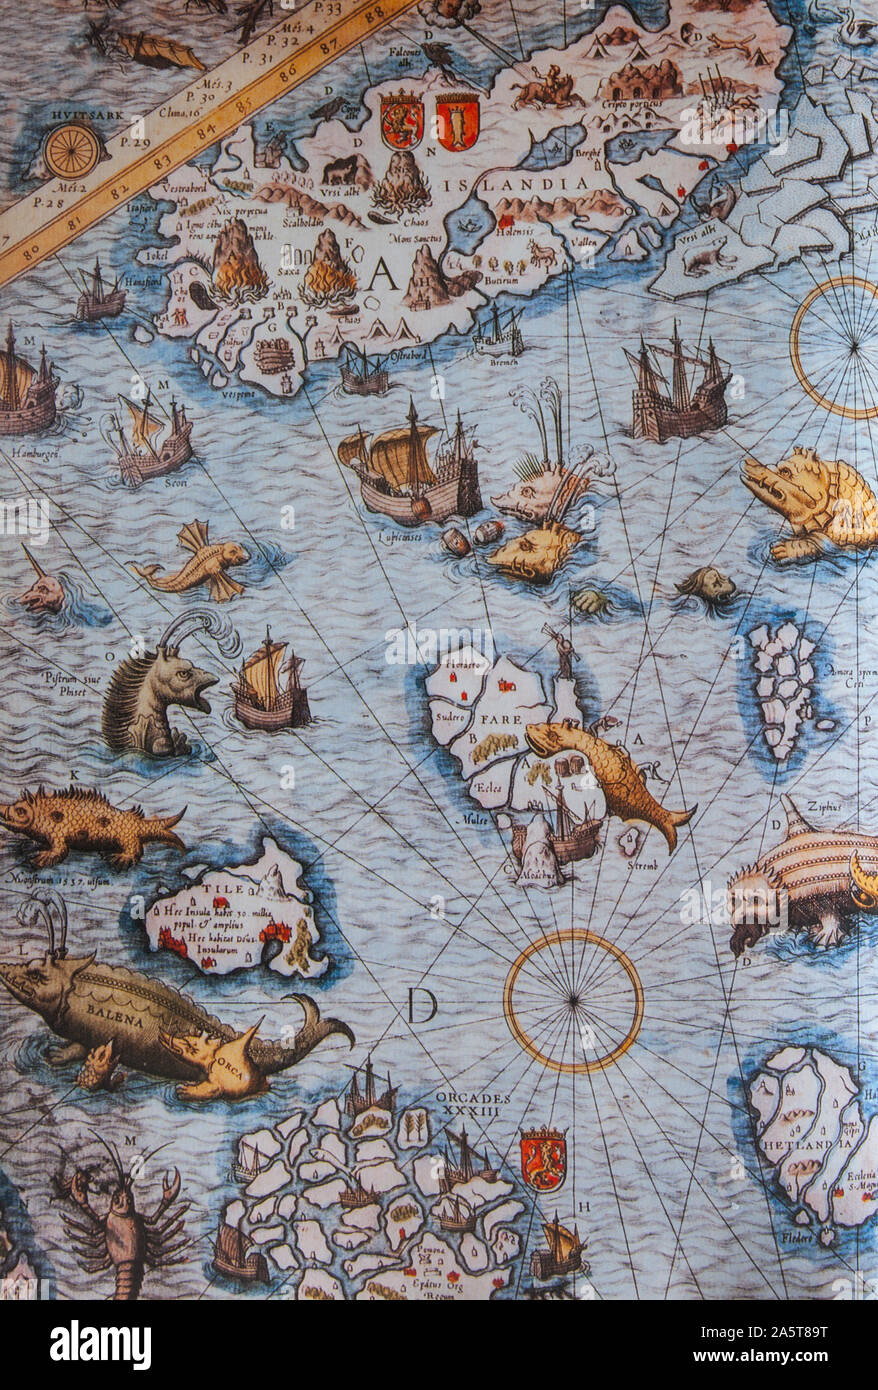 1539 Fragment of map by Olaus Magnus, depicting the mythical island of Thule. Original at Uppsala Library, Sweden, is the first large map of Northern Stock Photo